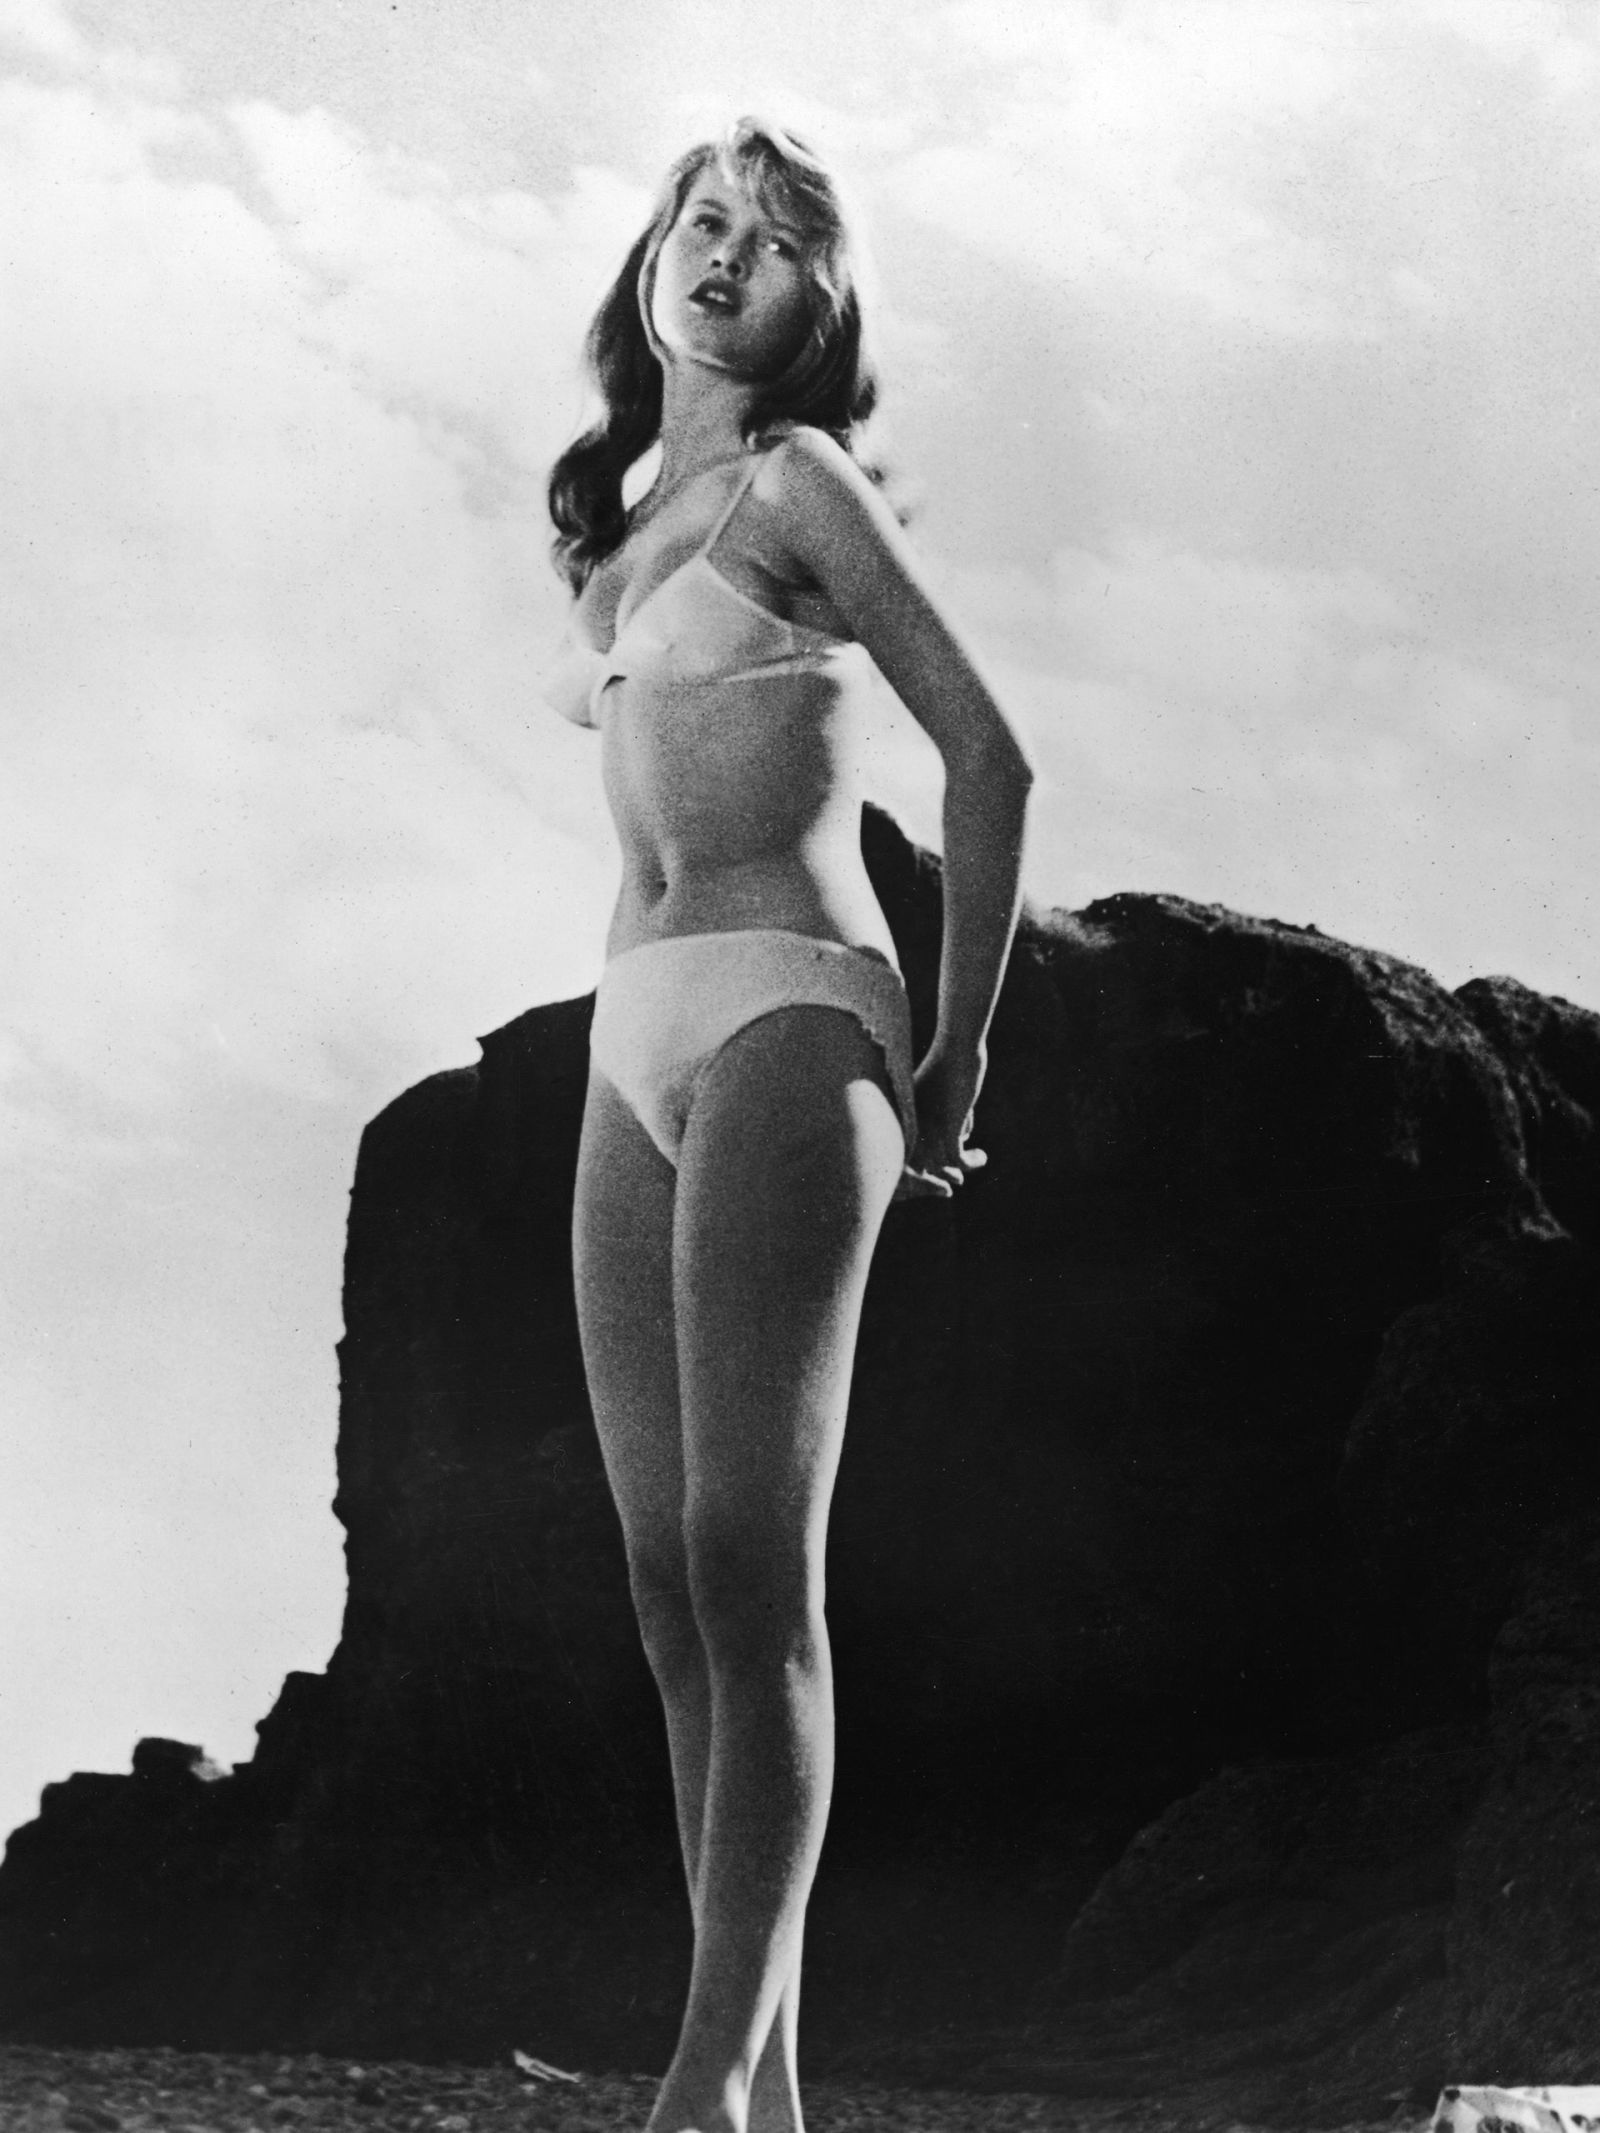 cd5f79d68a9 The Evolution of the Bathing Suit - The History of Swim Suit Styles